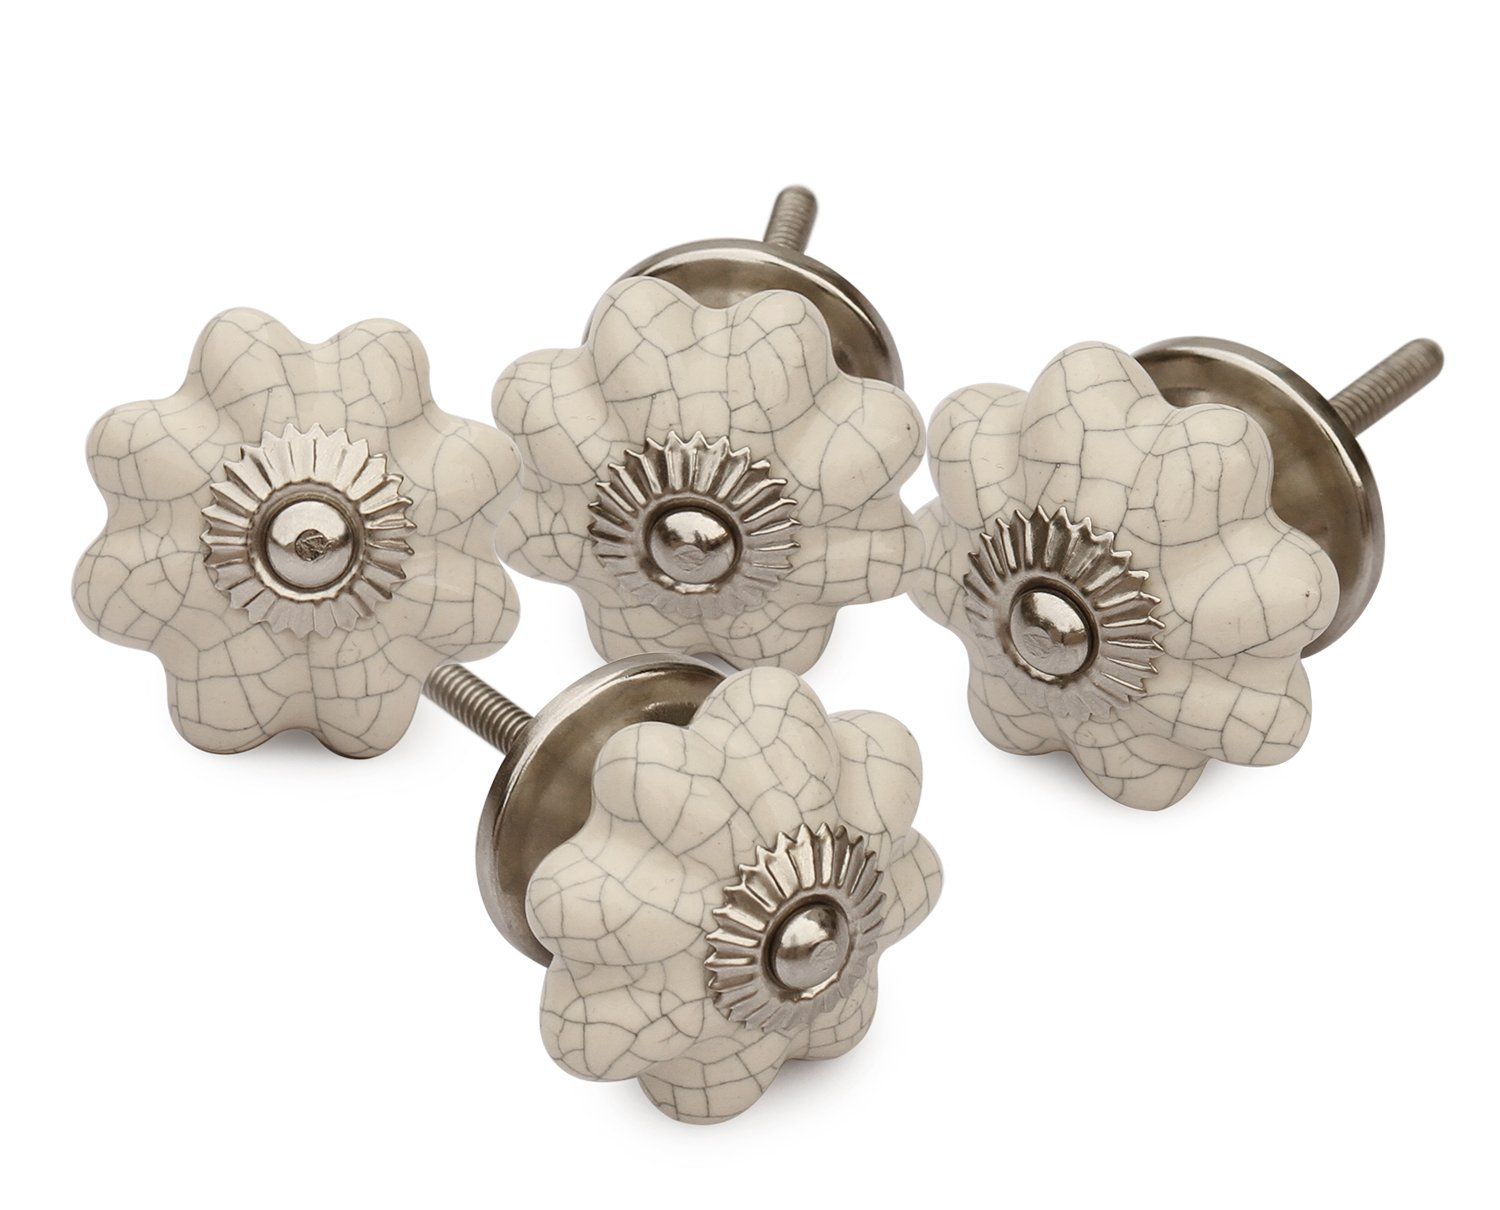 2018 - Set of 4 Ceramic White Pumpkin Decorative Antique Door Knobs- Interior Round Knobs and Pulls for Cabinet / Girls Dresser / Kids Cupboard / Kitchen Drawer Handles with Hardware Attached